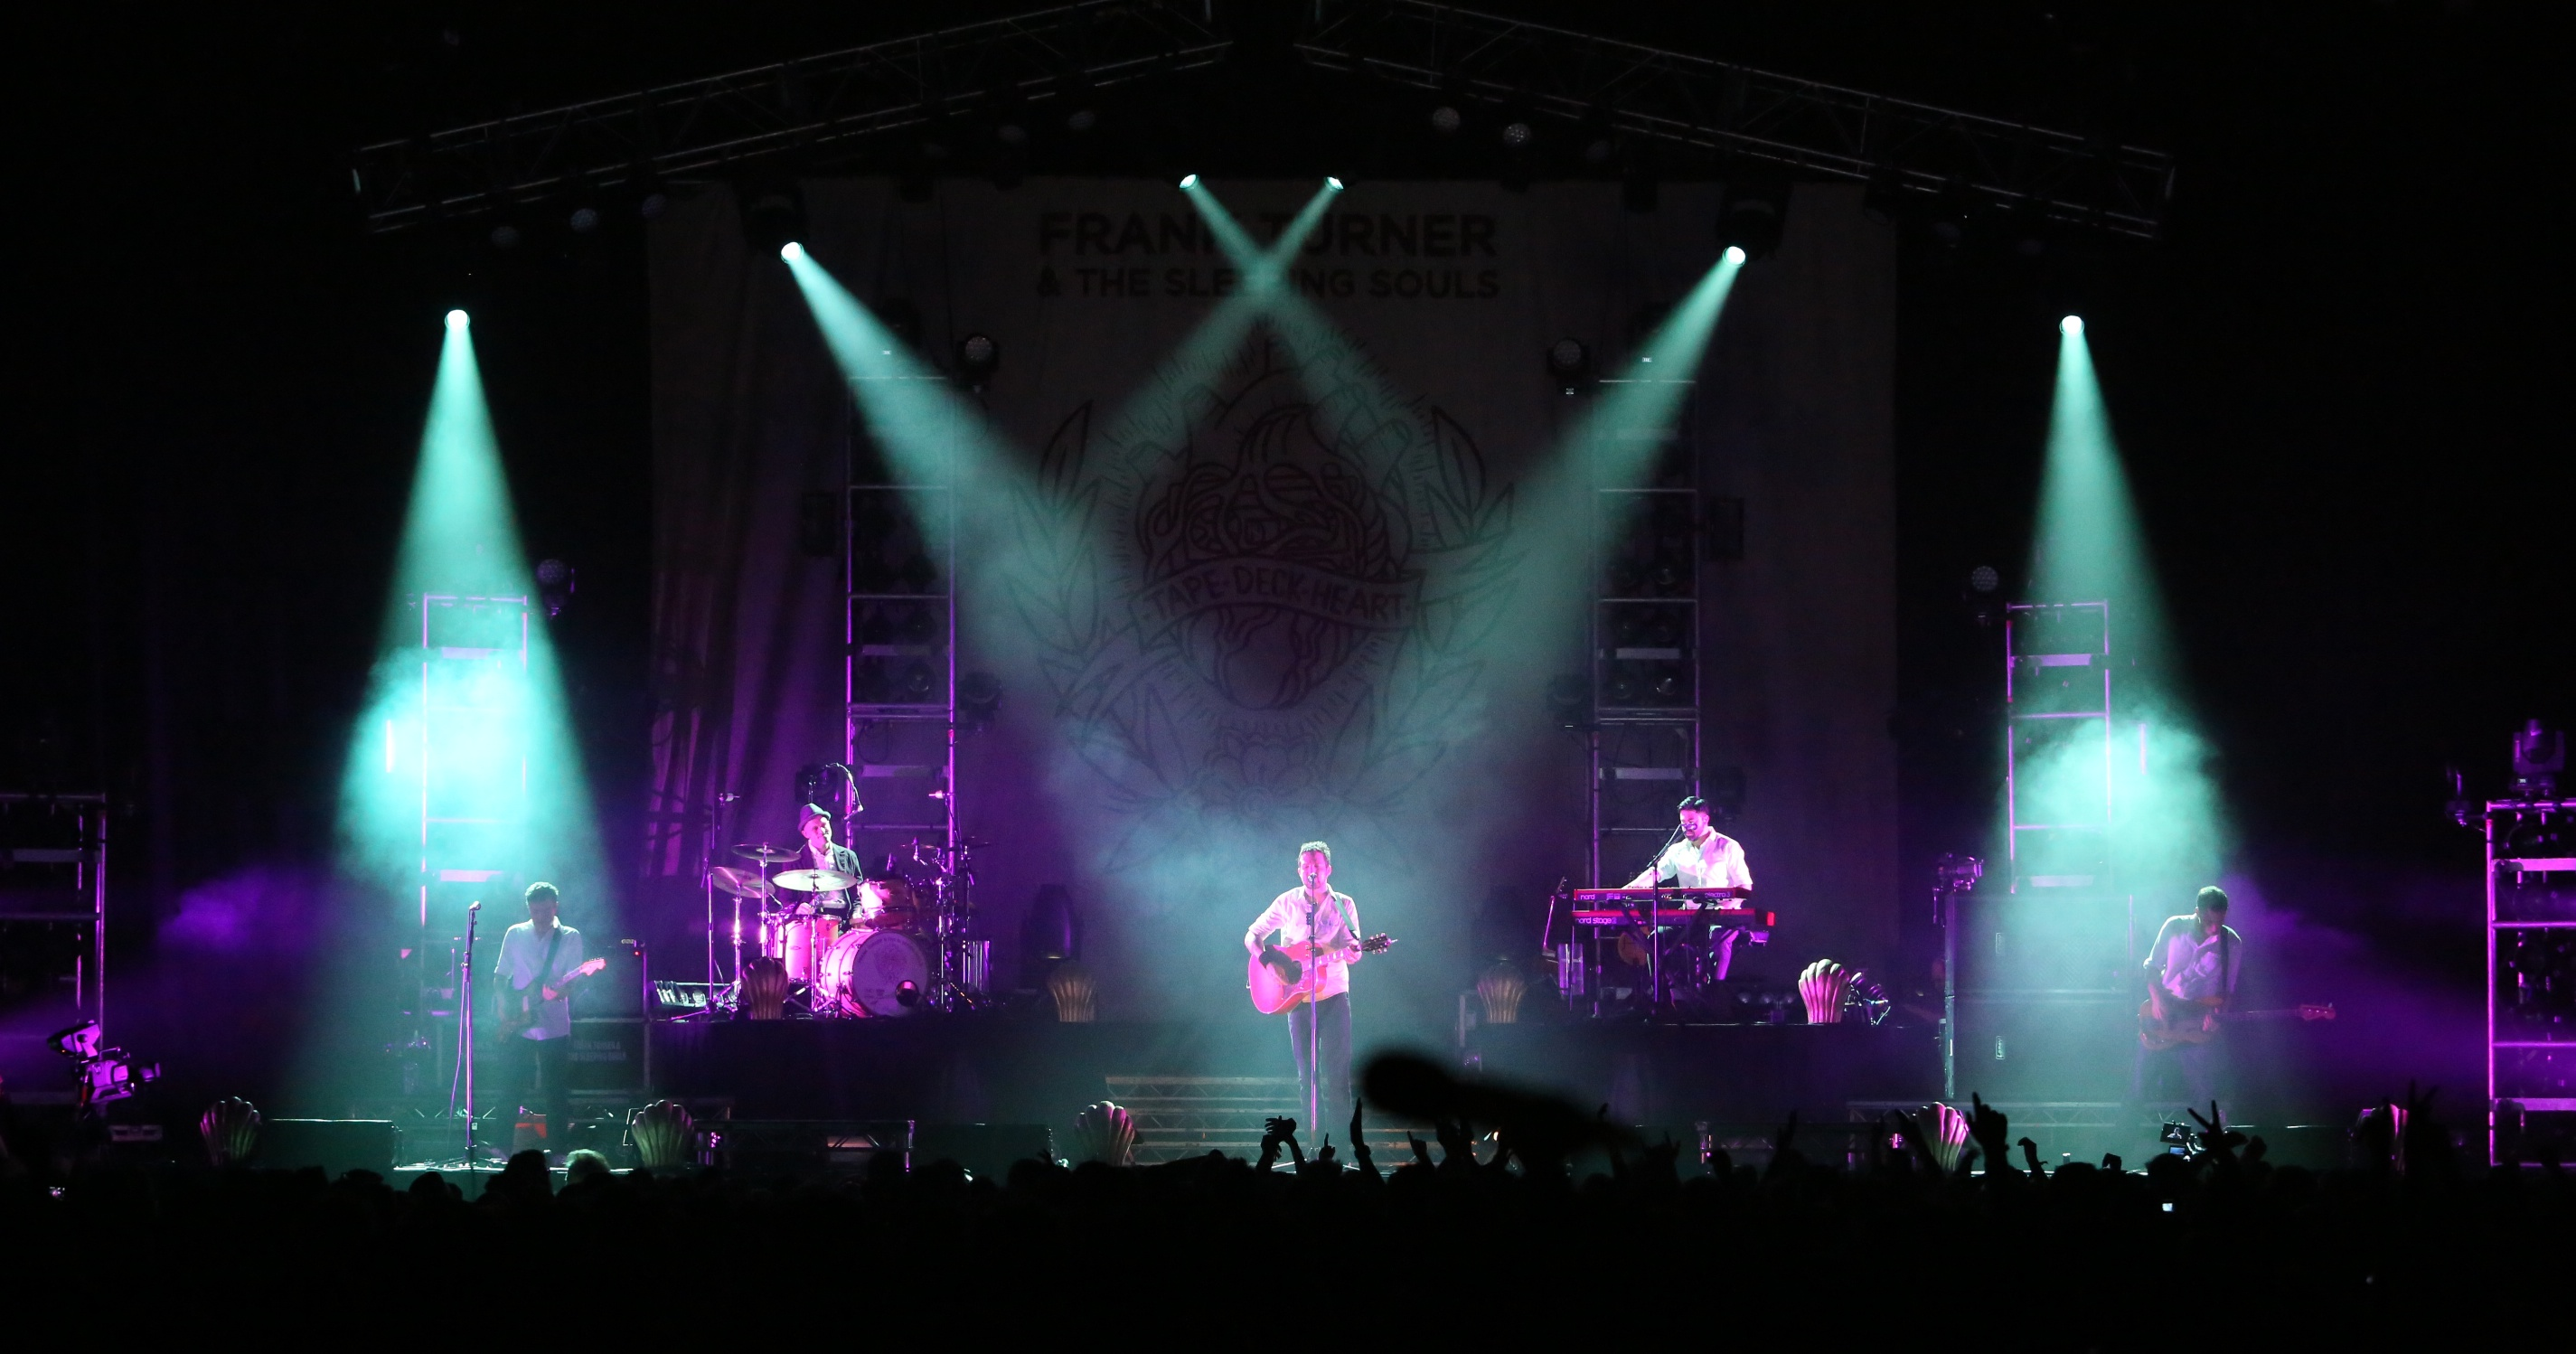 Avolites Sapphire Touch Controls Bold Lighting for Frank Turner's Arena Tour